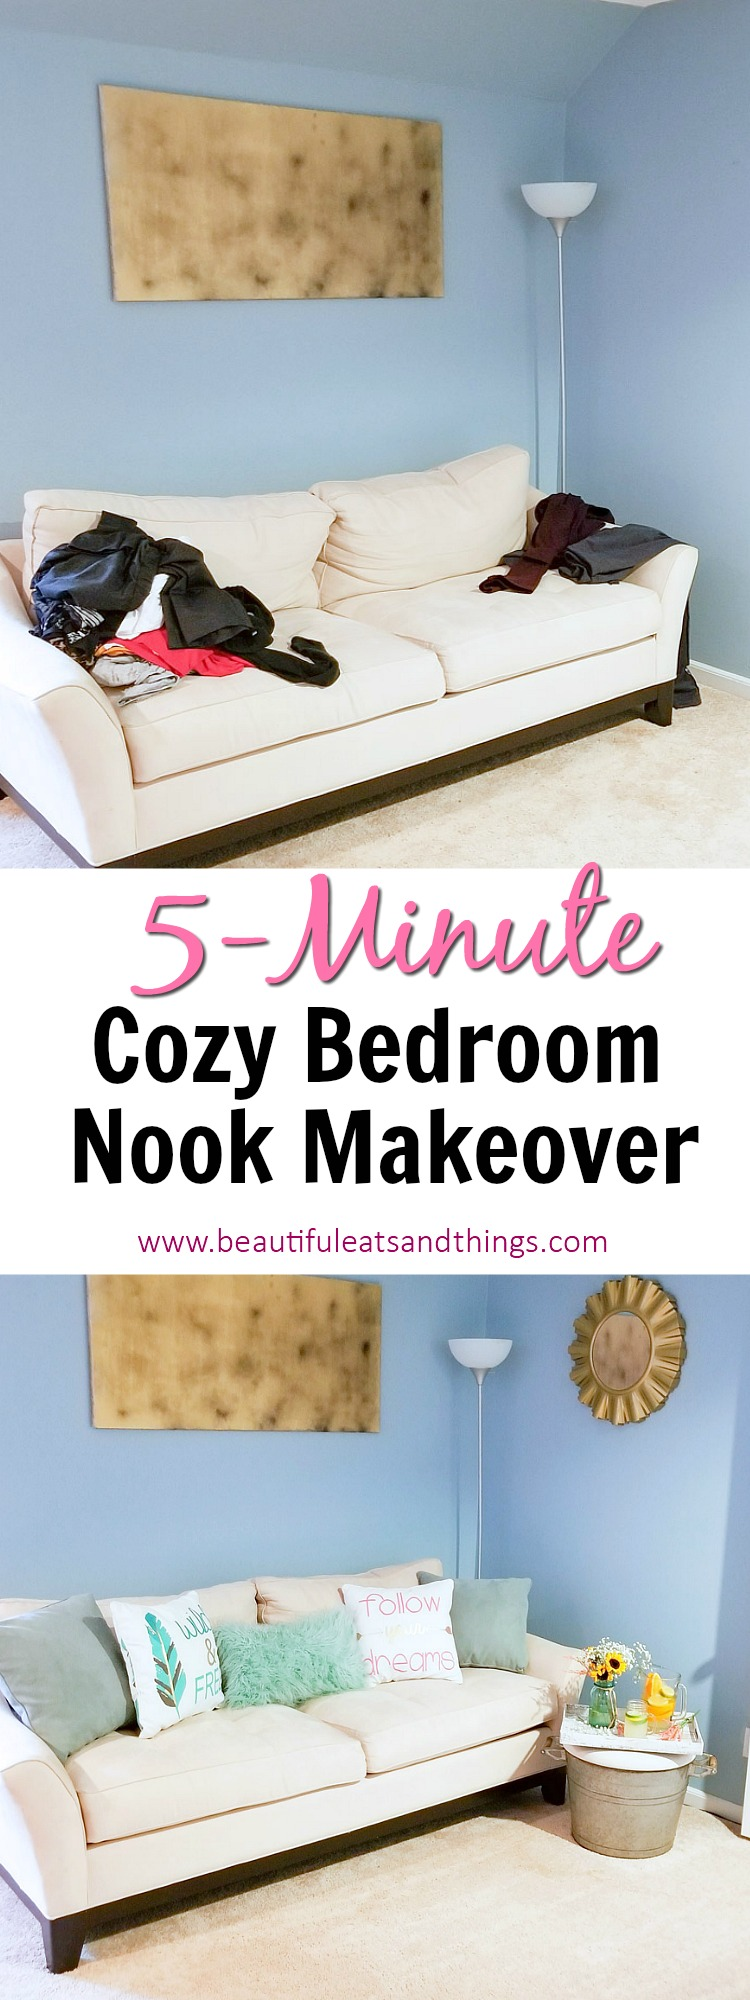 My 5 Minute Cozy Bedroom Nook Makeover-Direct Energy, One Hour Heating & Air Conditioning